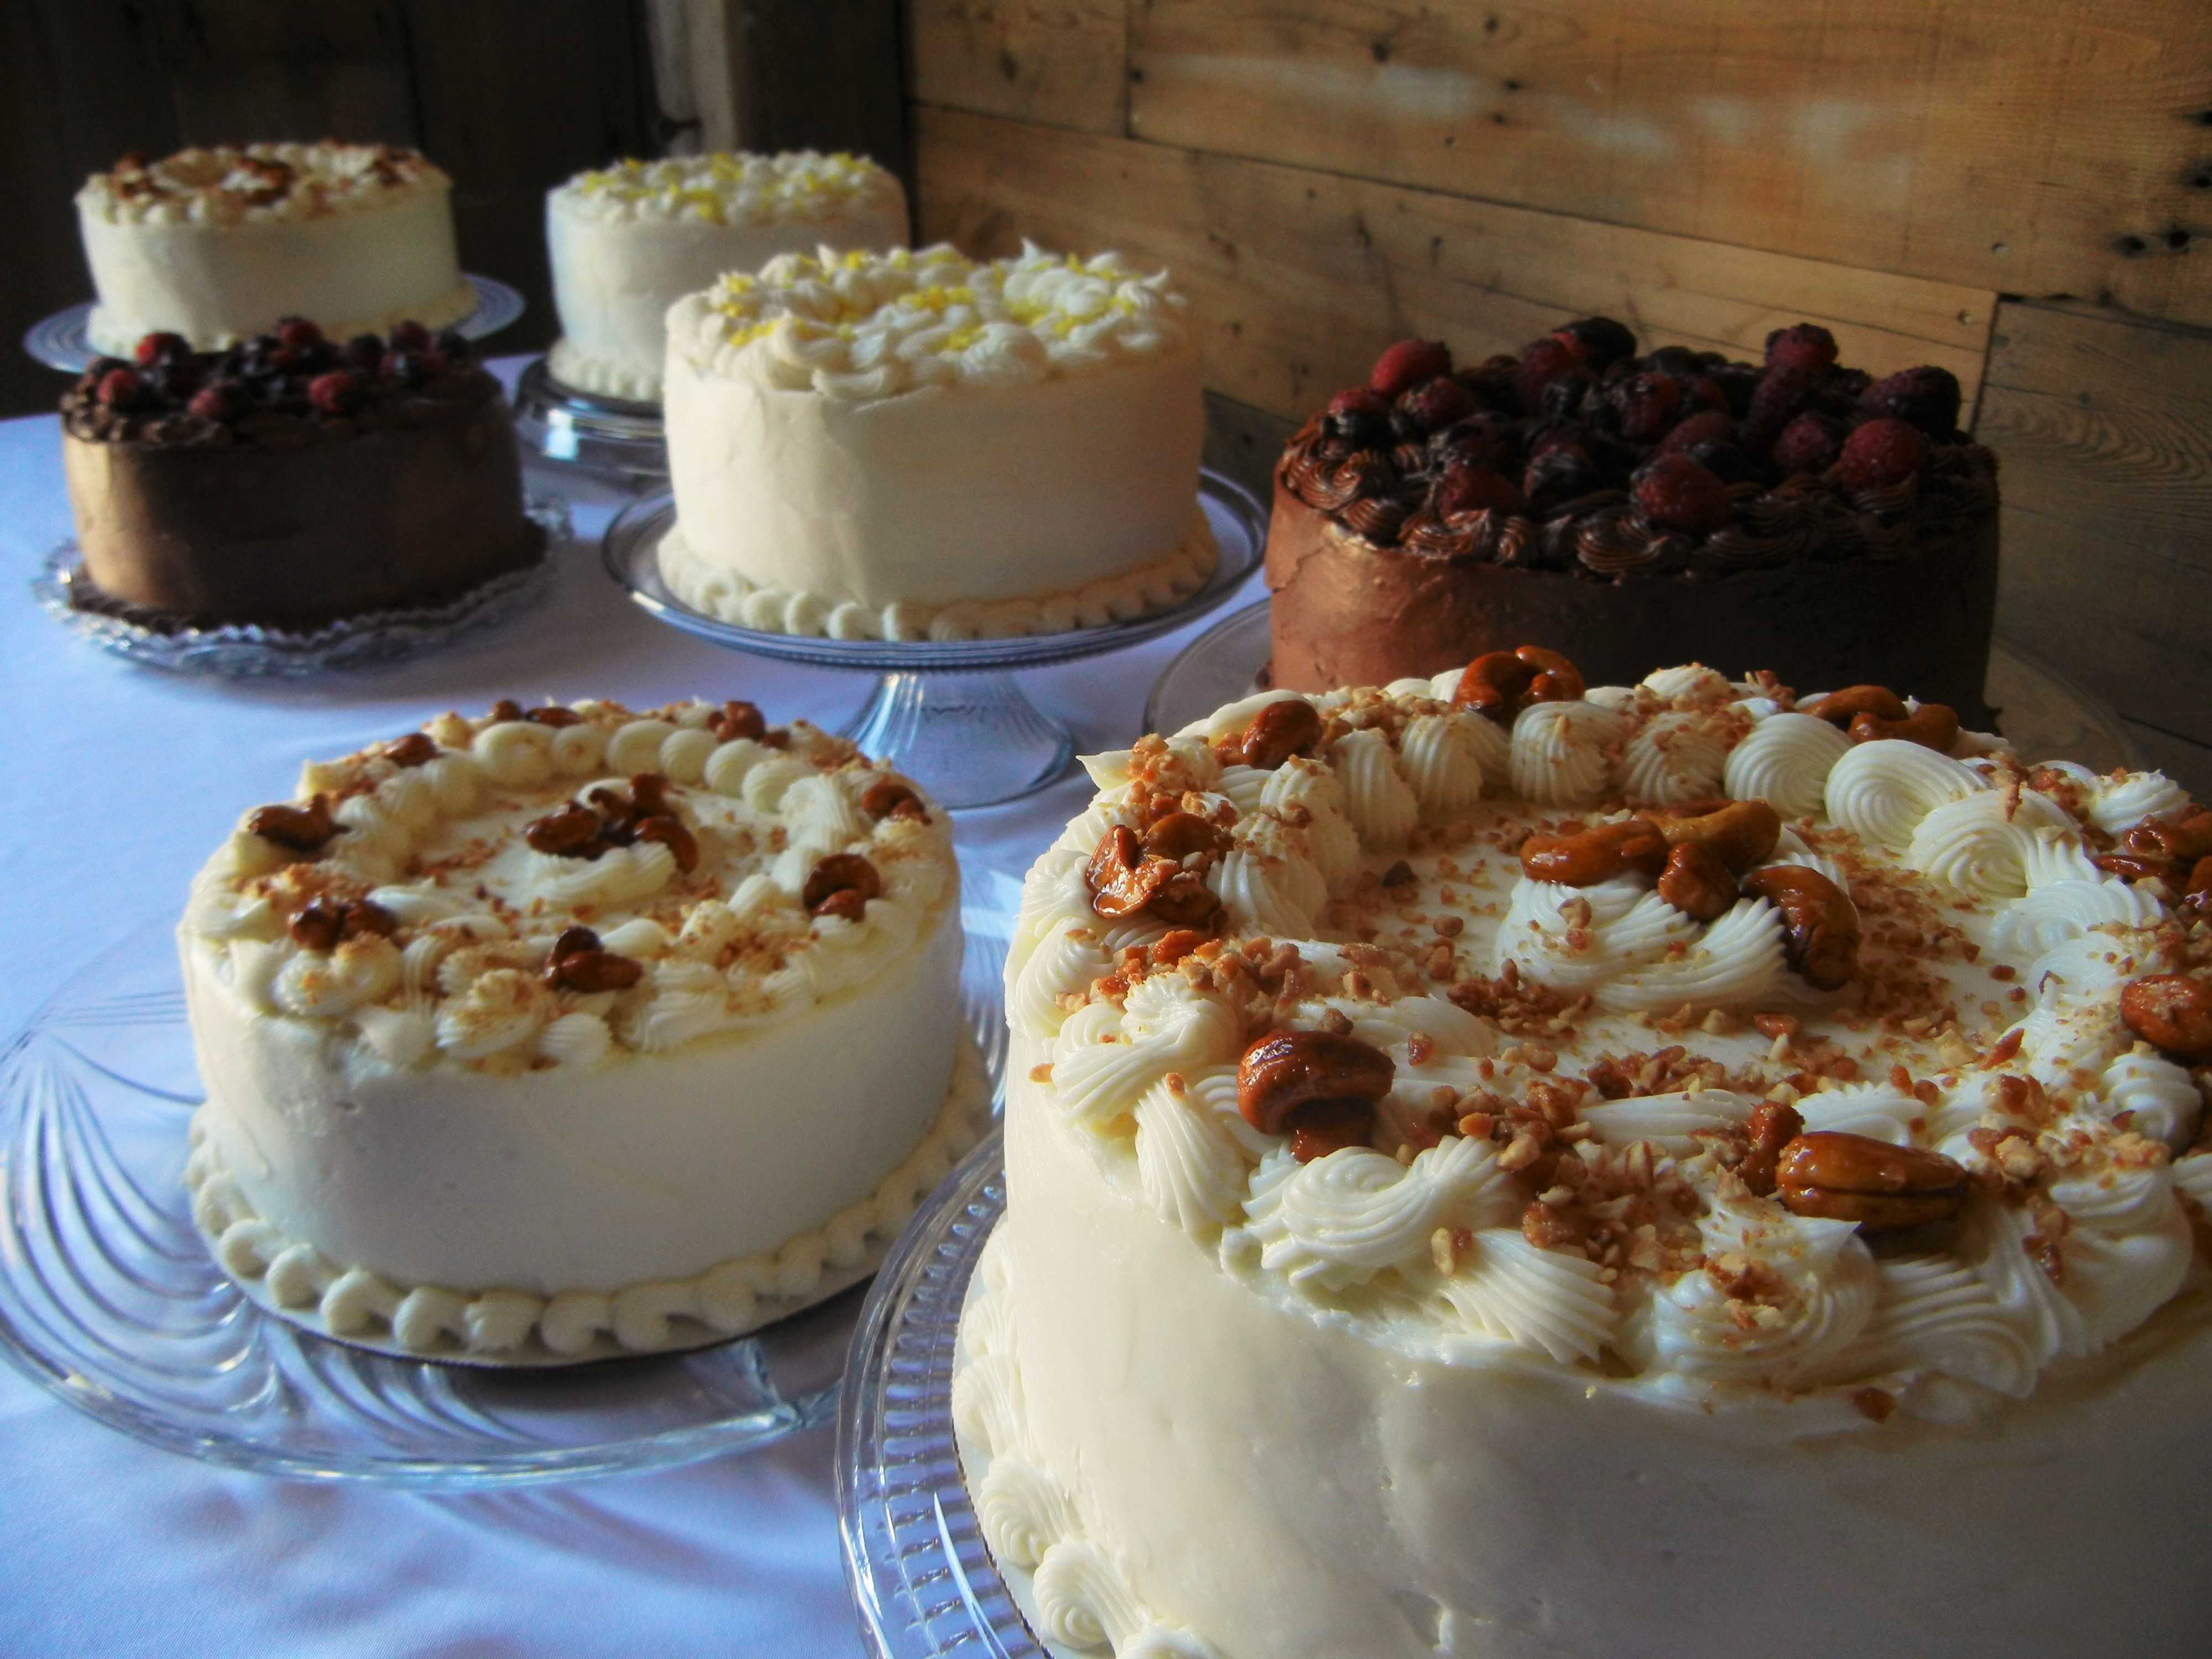 A multi-cake display